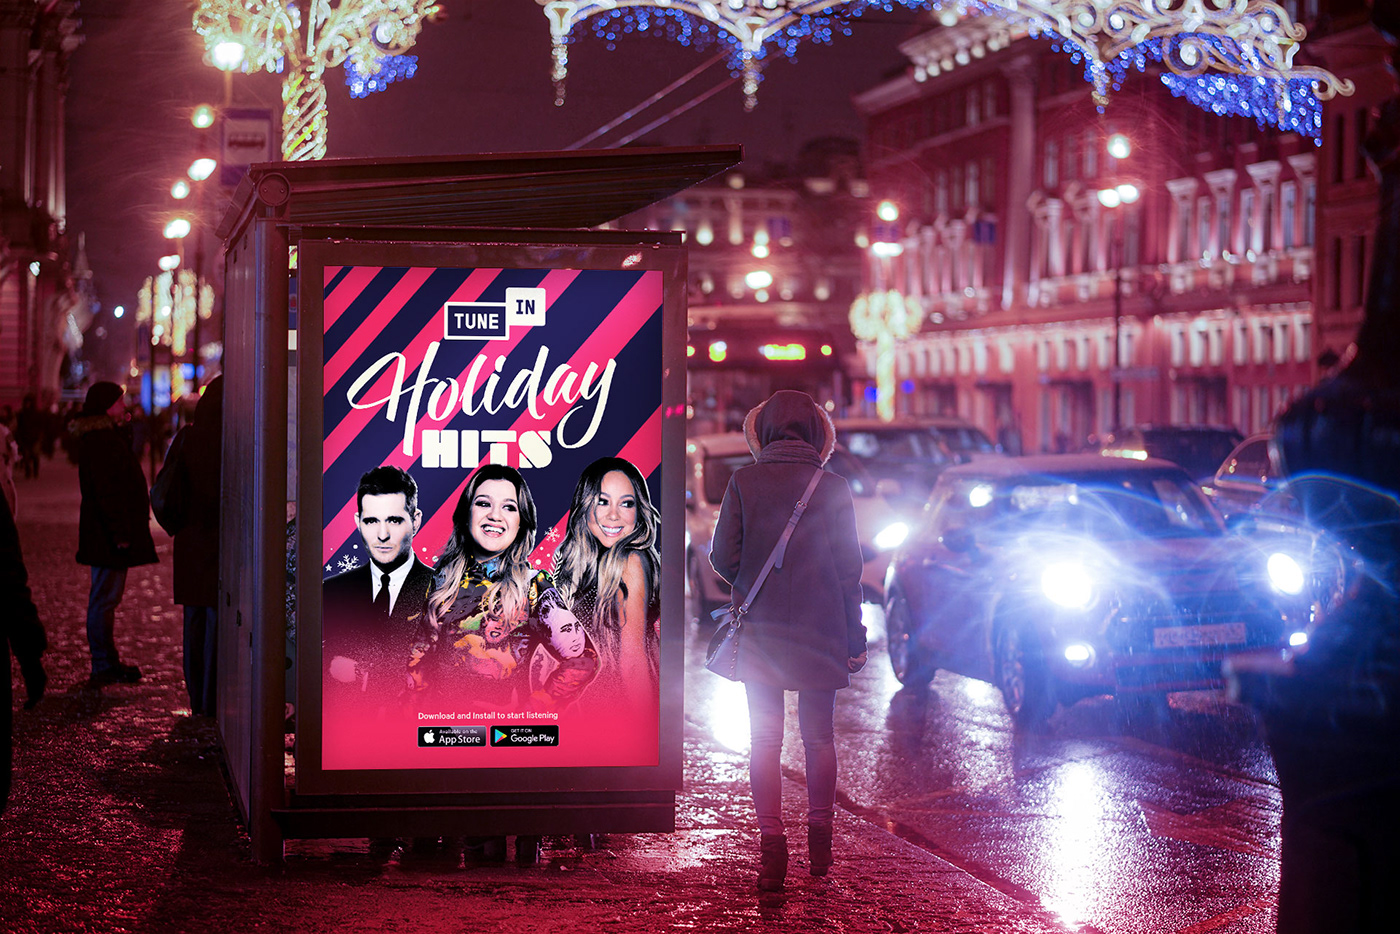 Advertising  campaign graphicdesign Holiday identity johnlegend Layout motion music Streaming